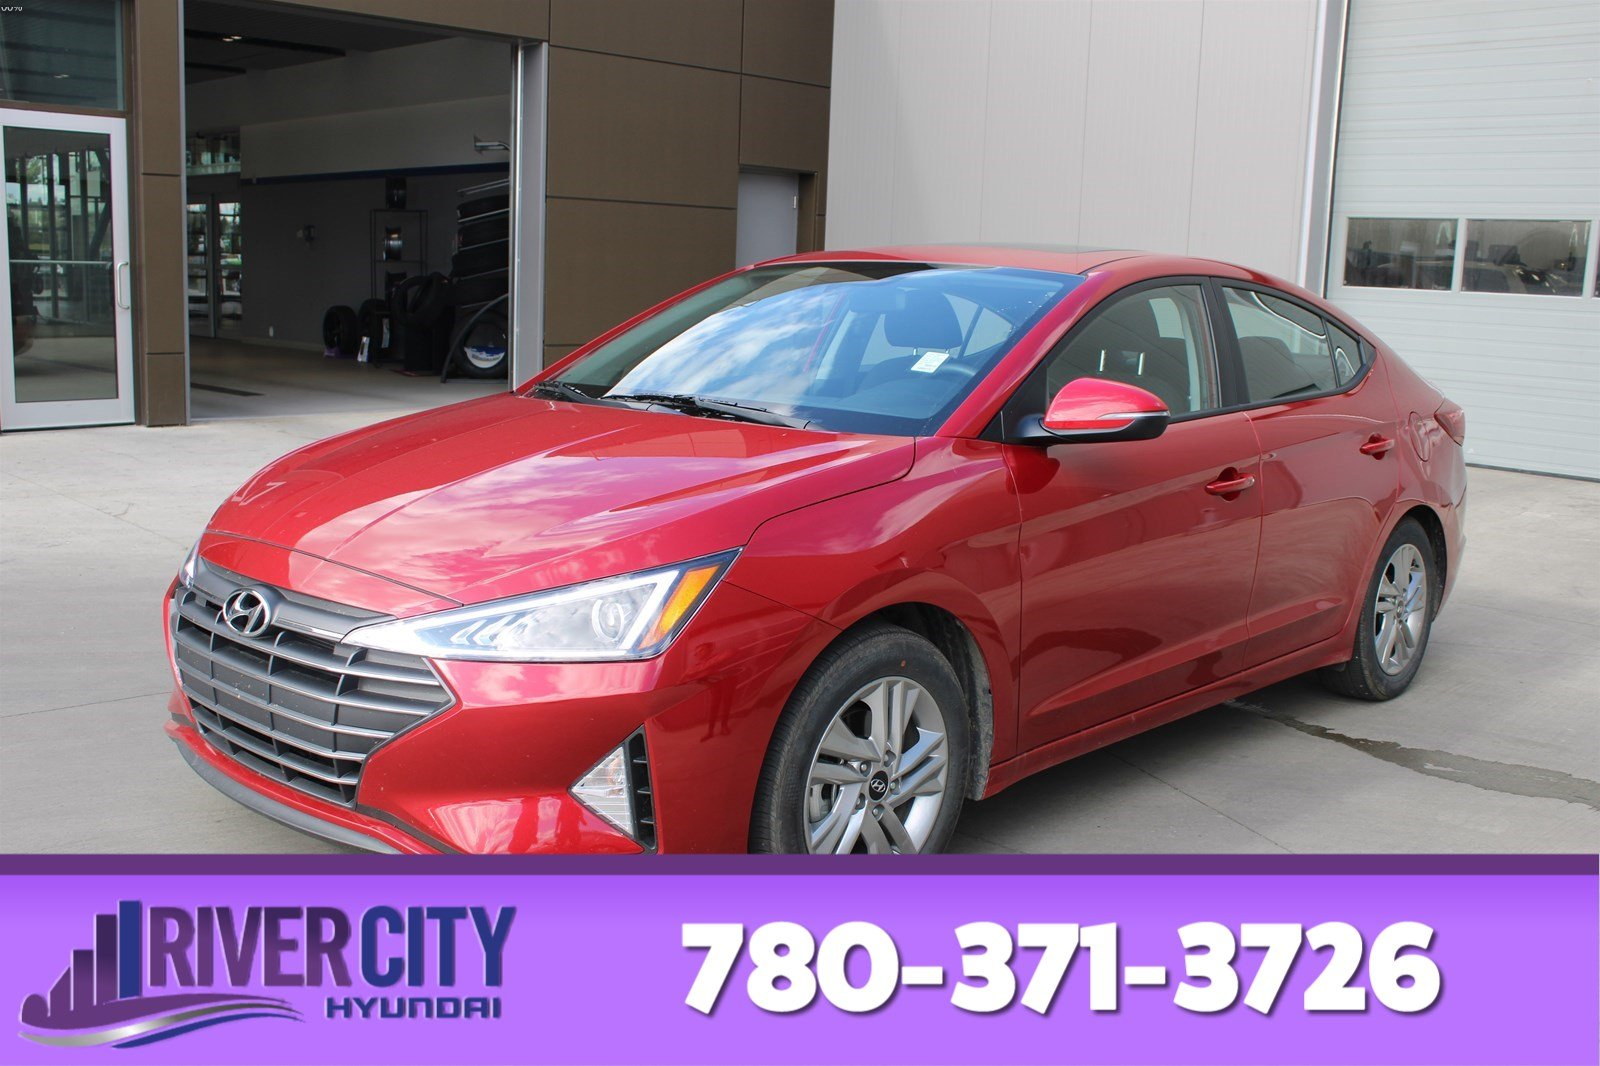 Certified Pre-Owned 2019 Hyundai Elantra PREFERRED SUN/SOUND Heated Seats, Sunroof, Back-up Cam, Bluetooth,